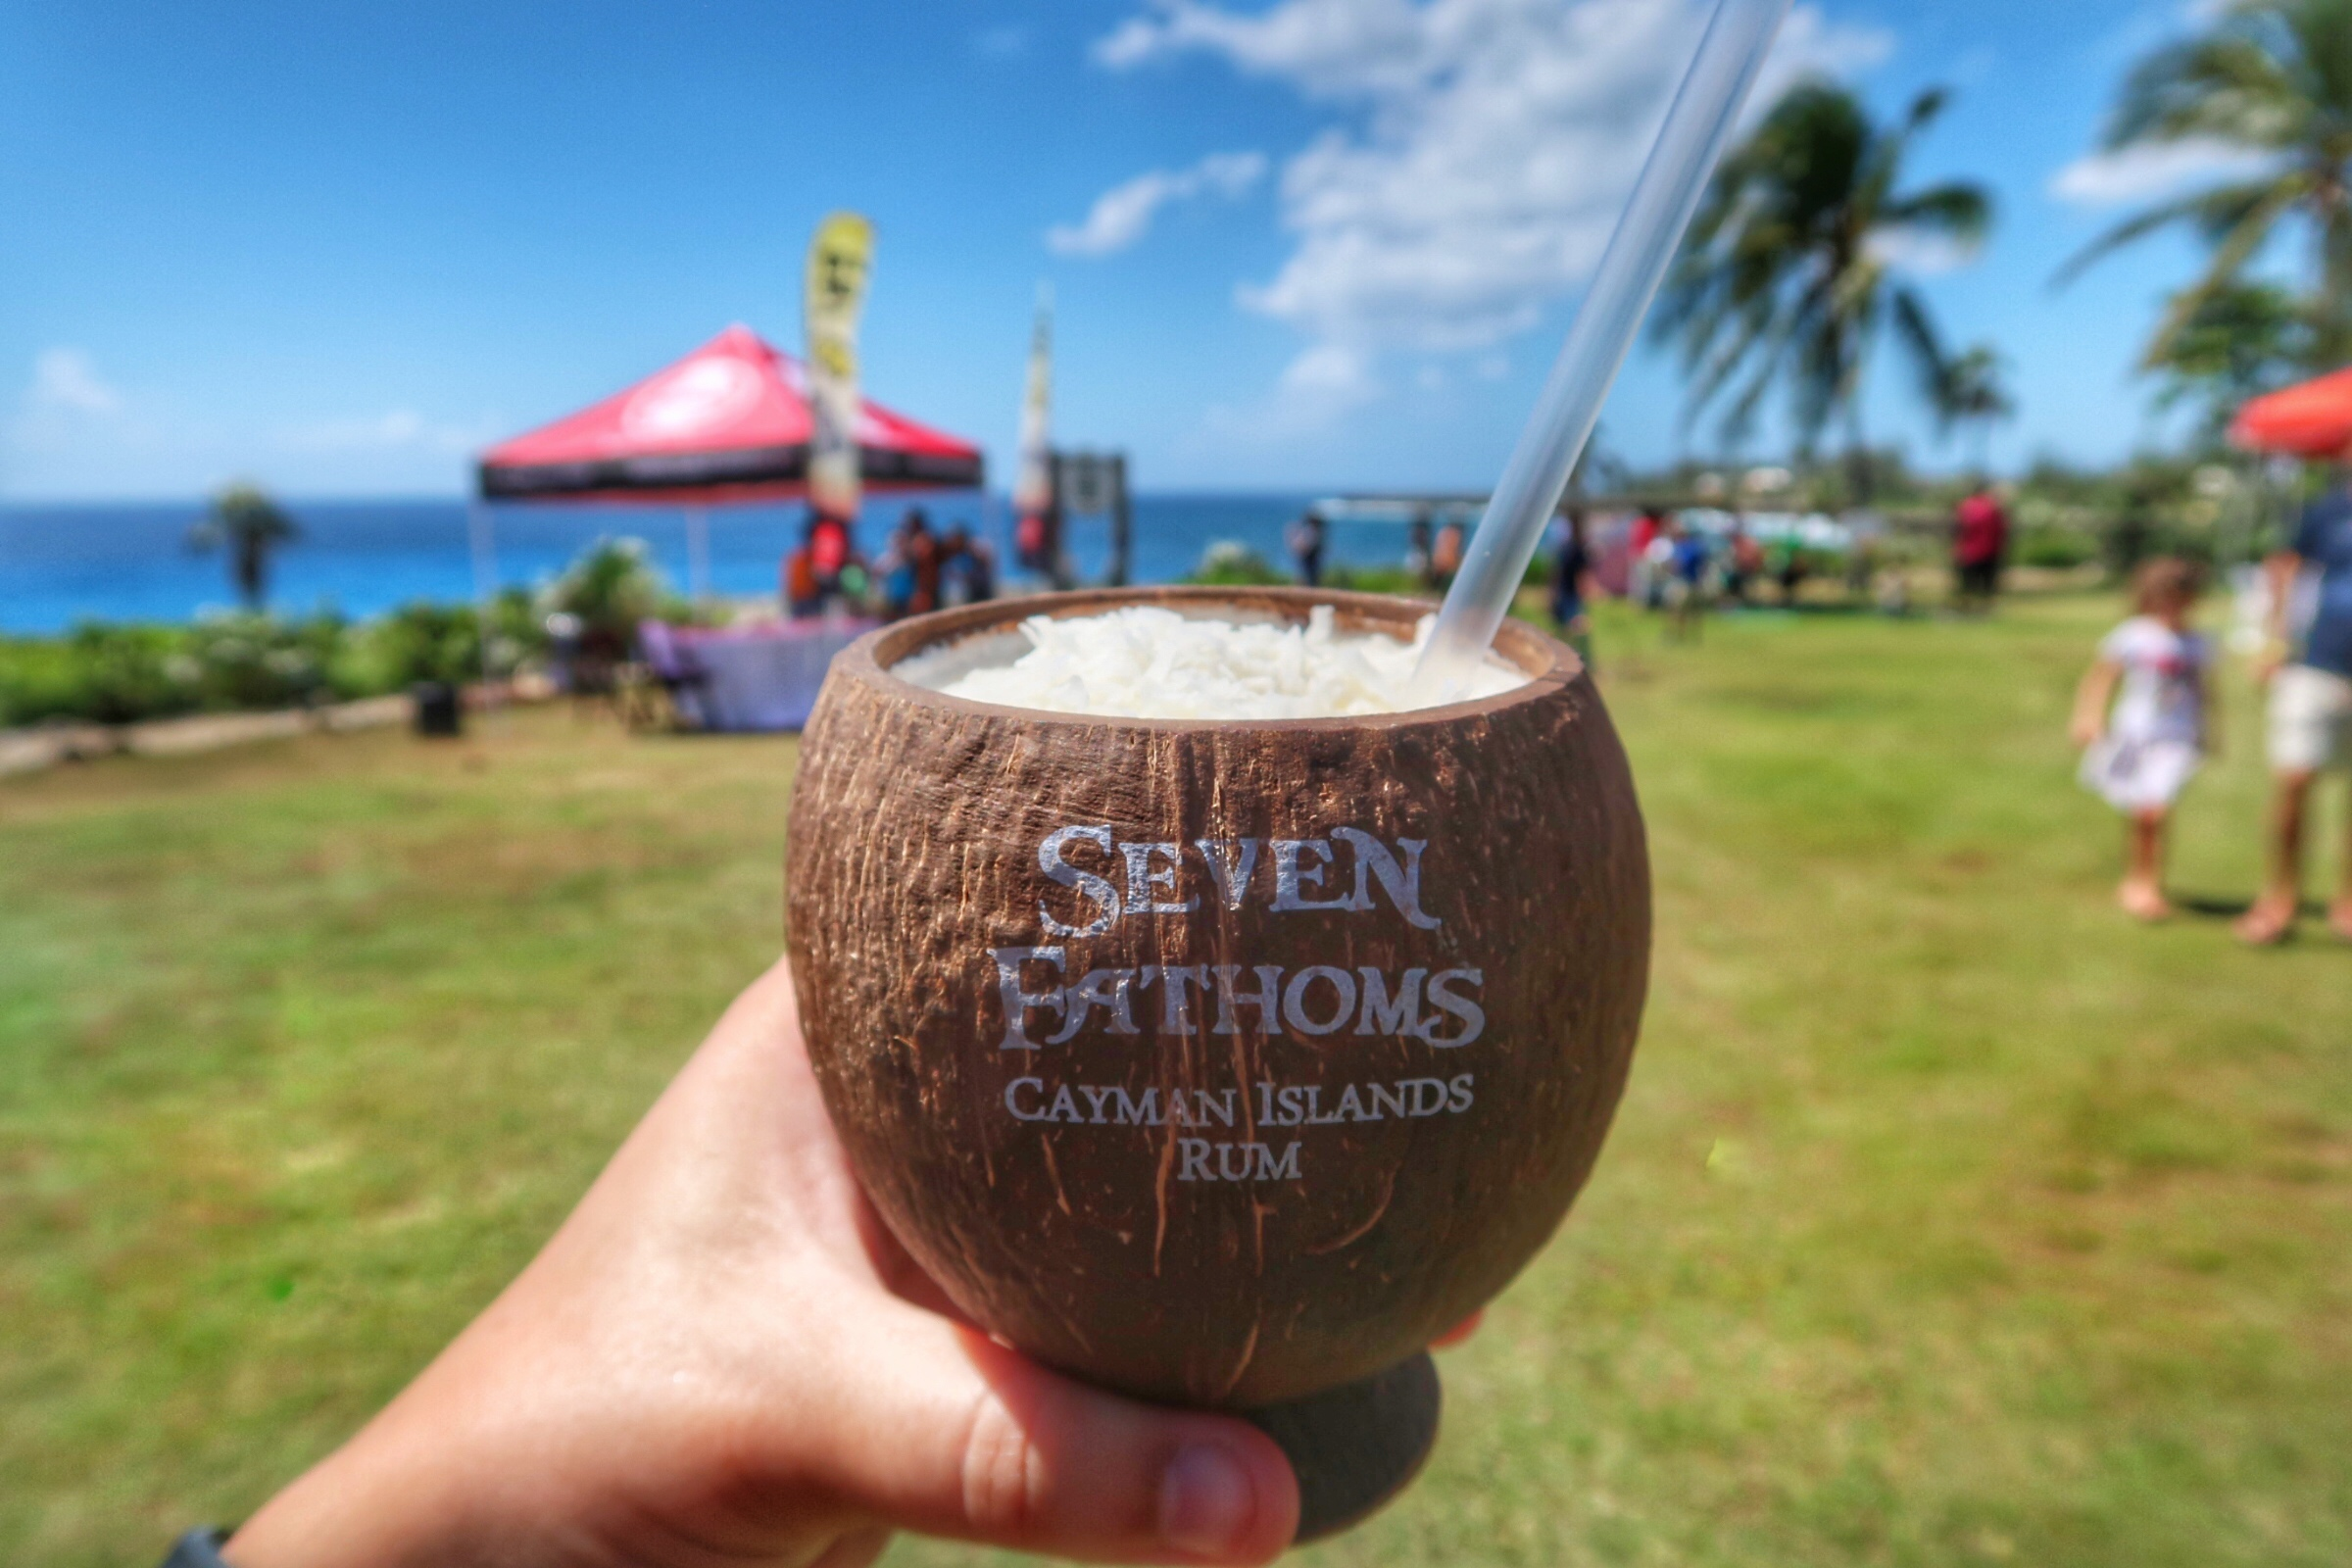 Cayman Spirits Company's cocolada in their souvenir cup